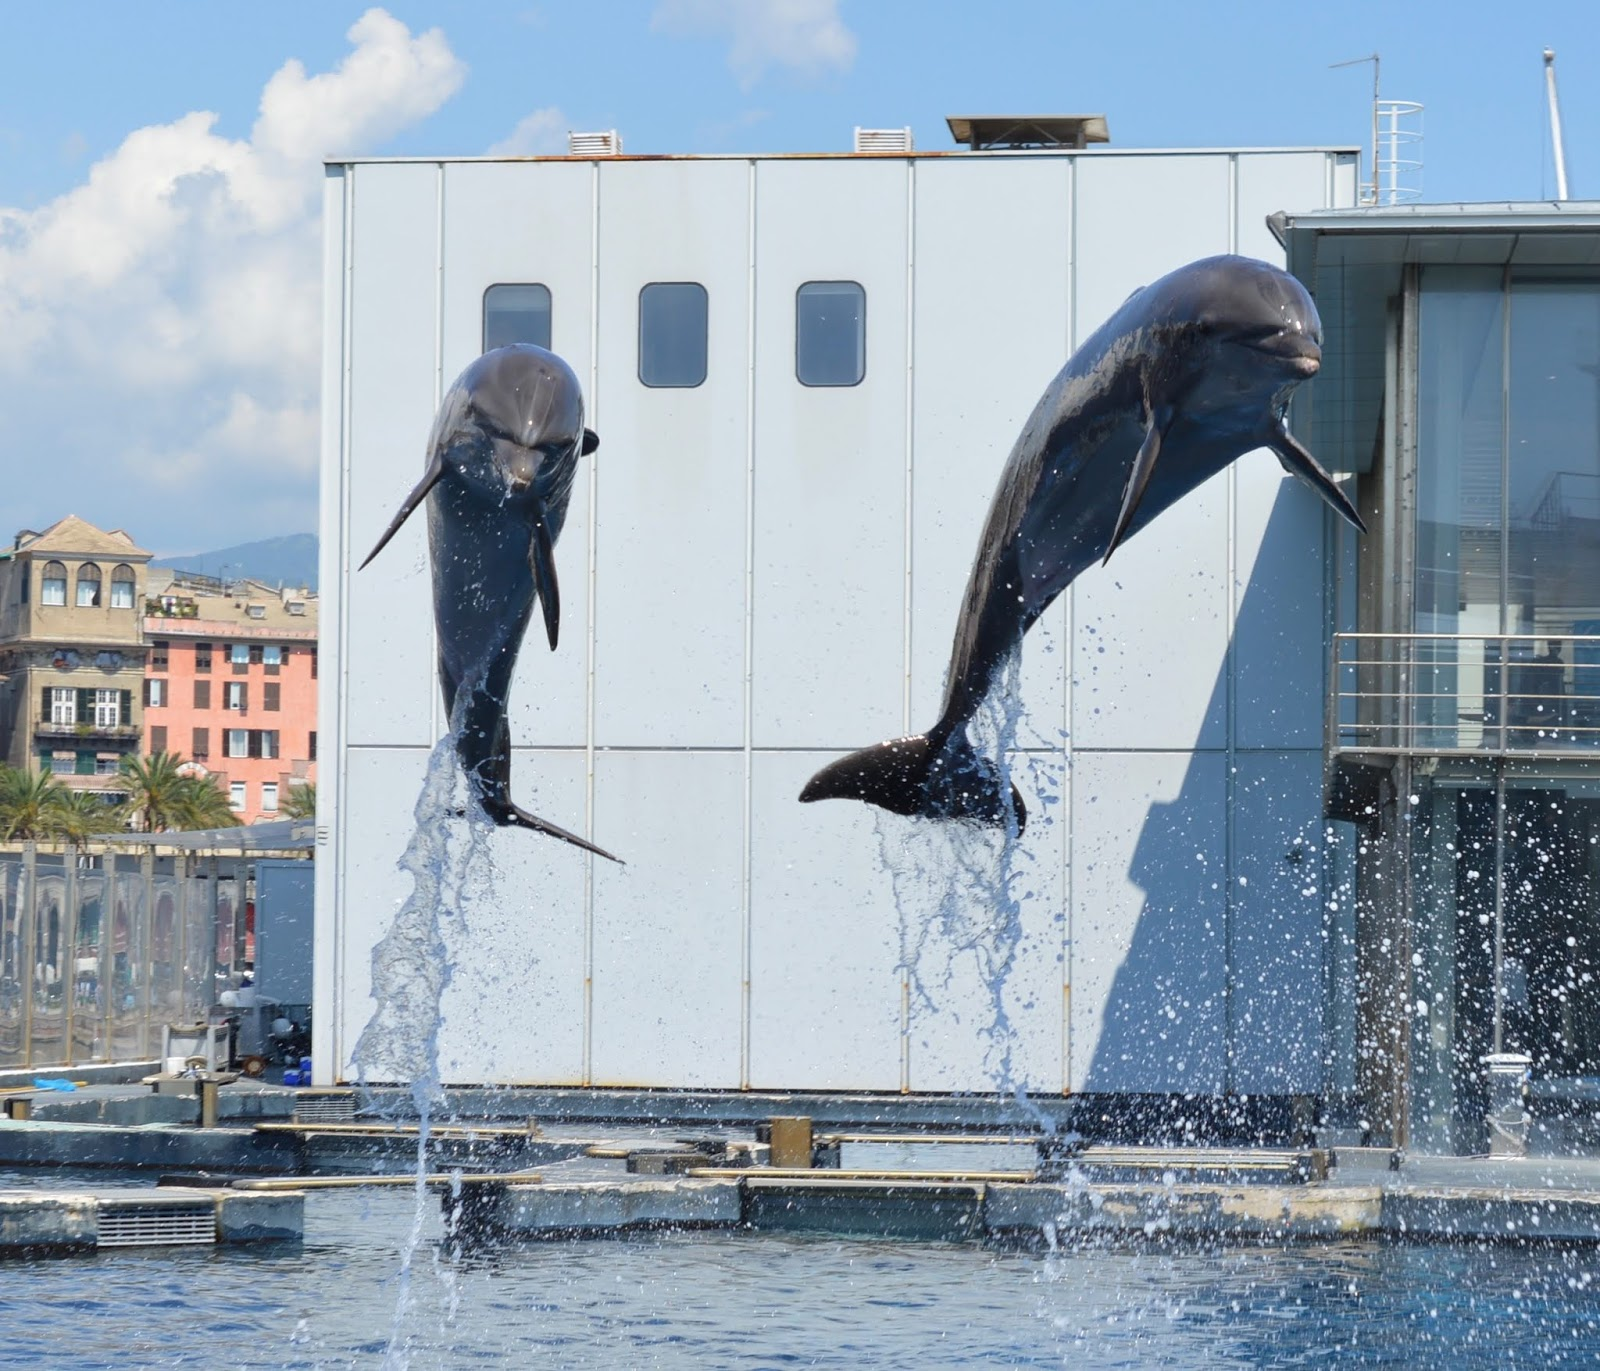 How to spend a weekend in Genoa with kids - Genoa aquarium behind the scenes tour - dolphins